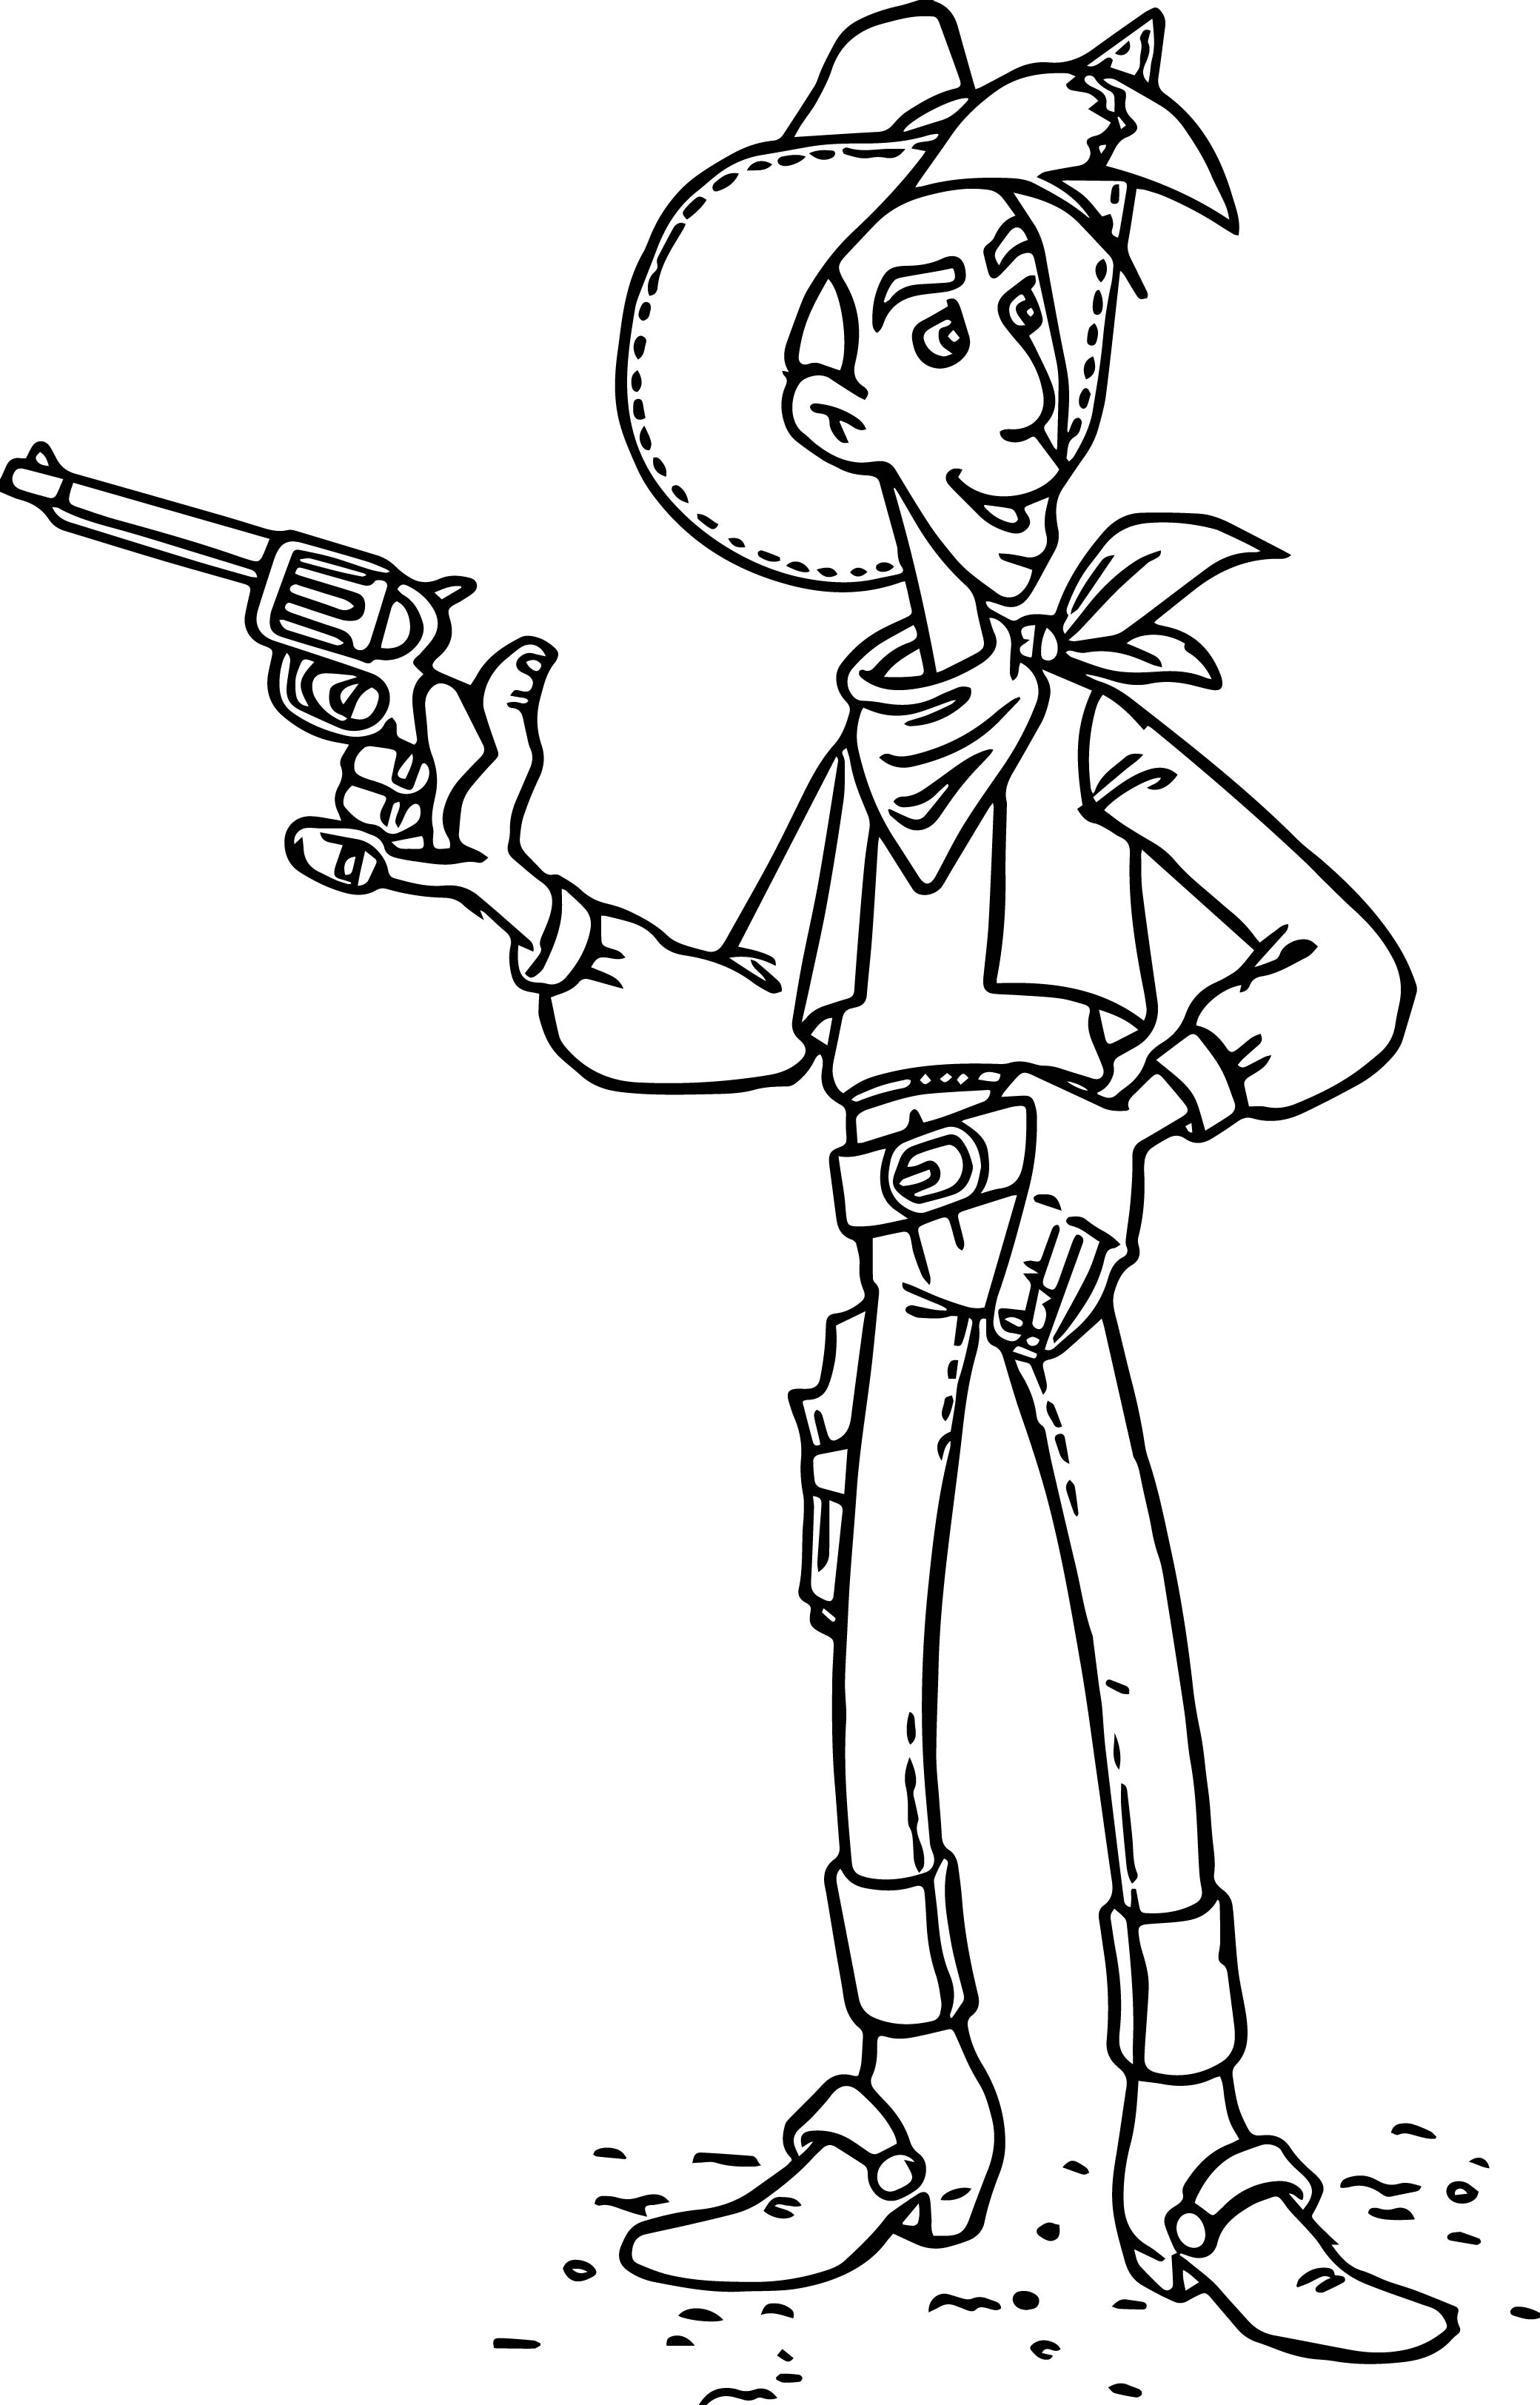 Lucky Luke Gun Coloring Page